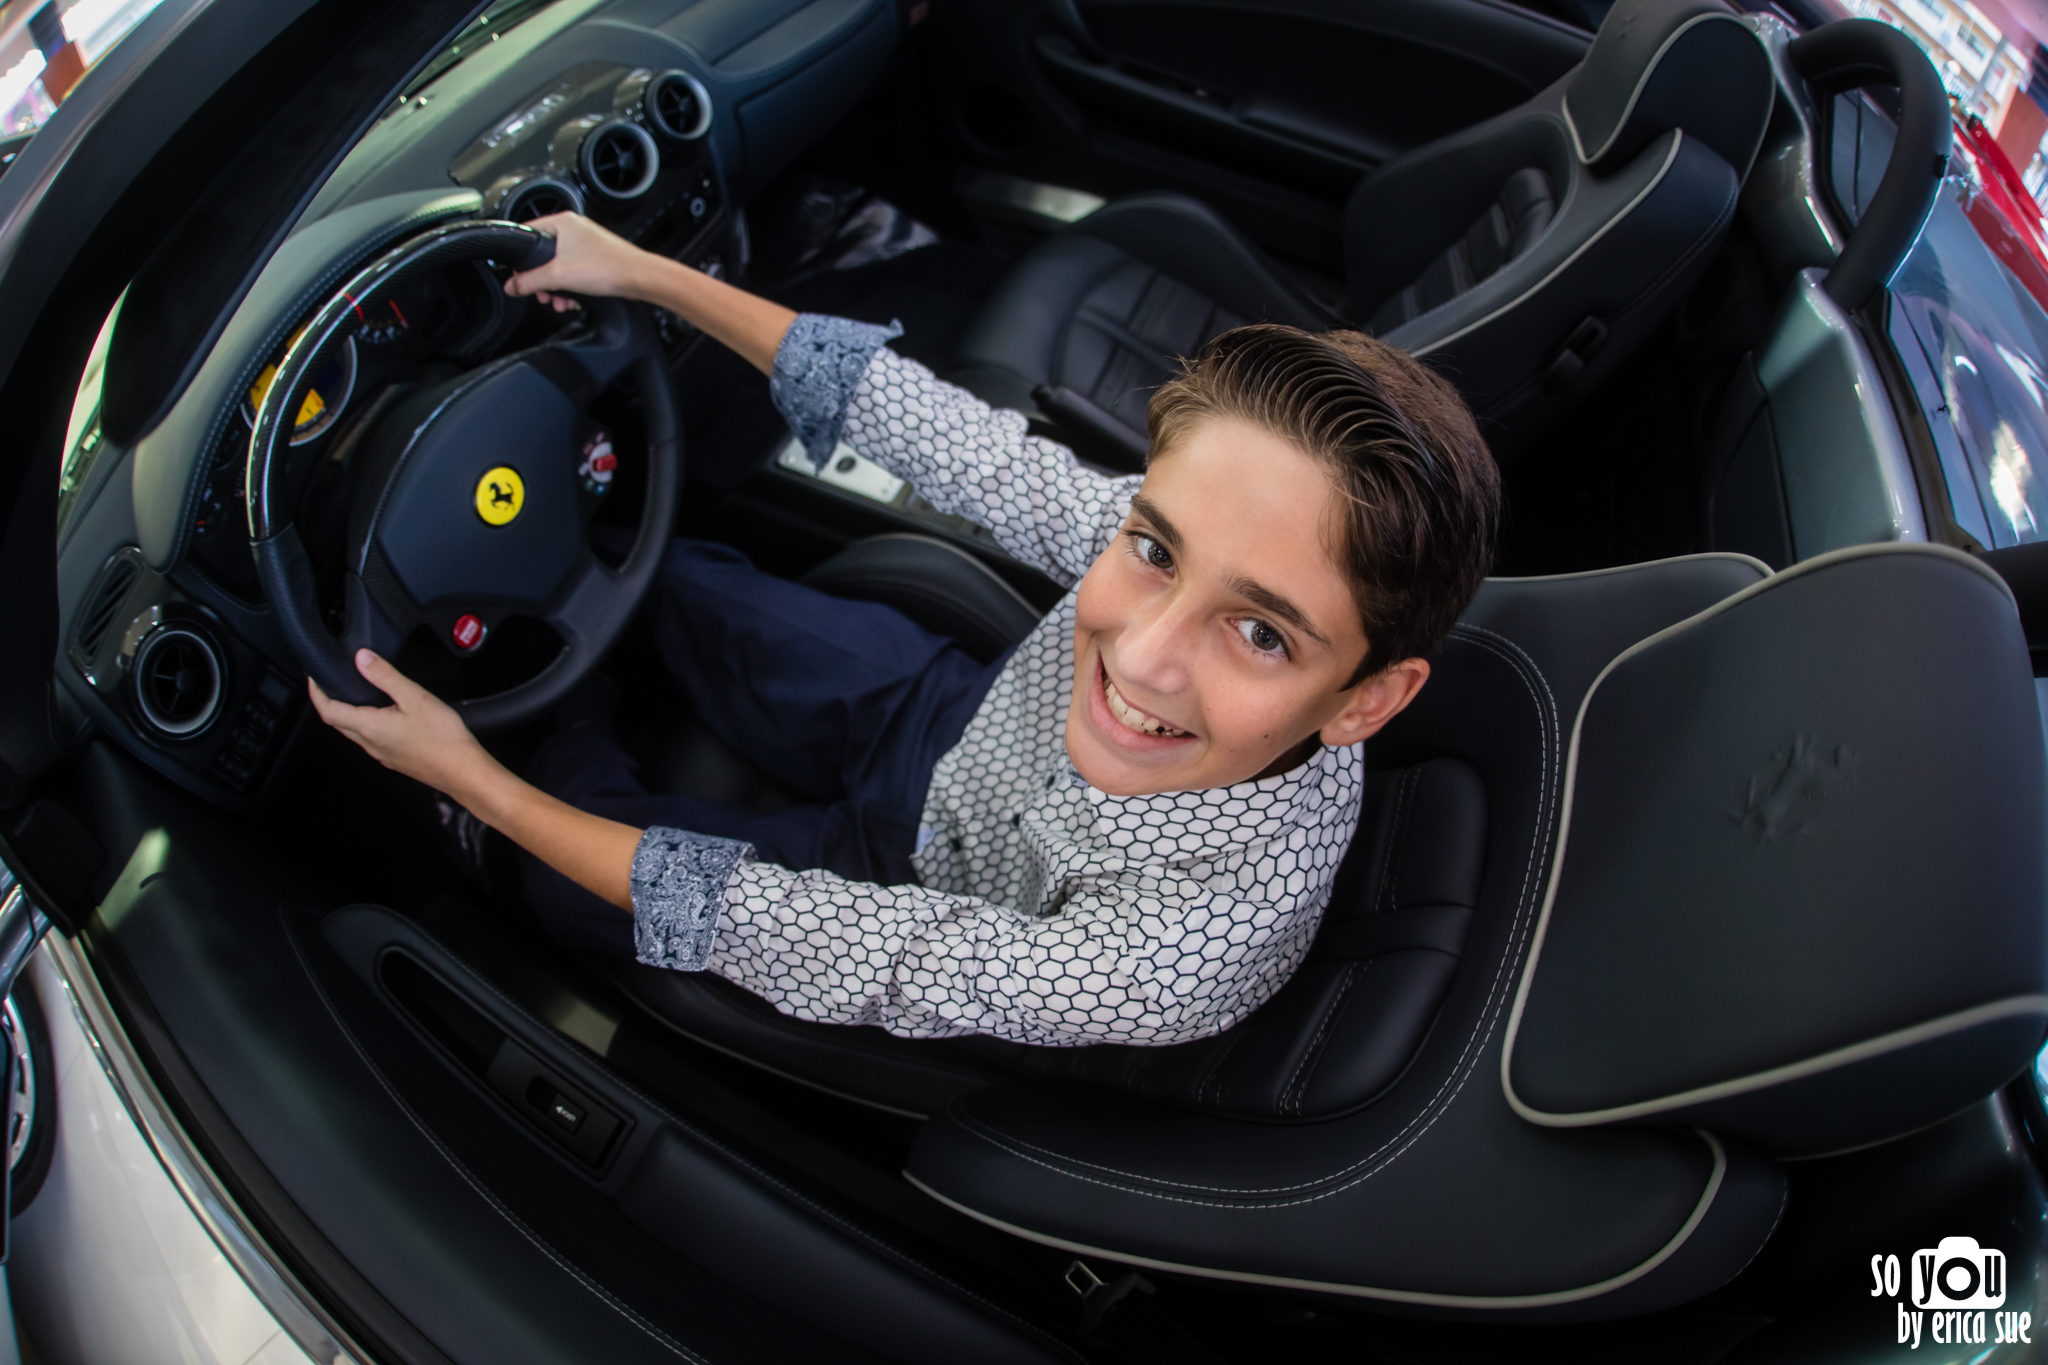 so-you-by-erica-sue-mitzvah-photographer-collection-luxury-car-ft-lauderdale-5090.jpg